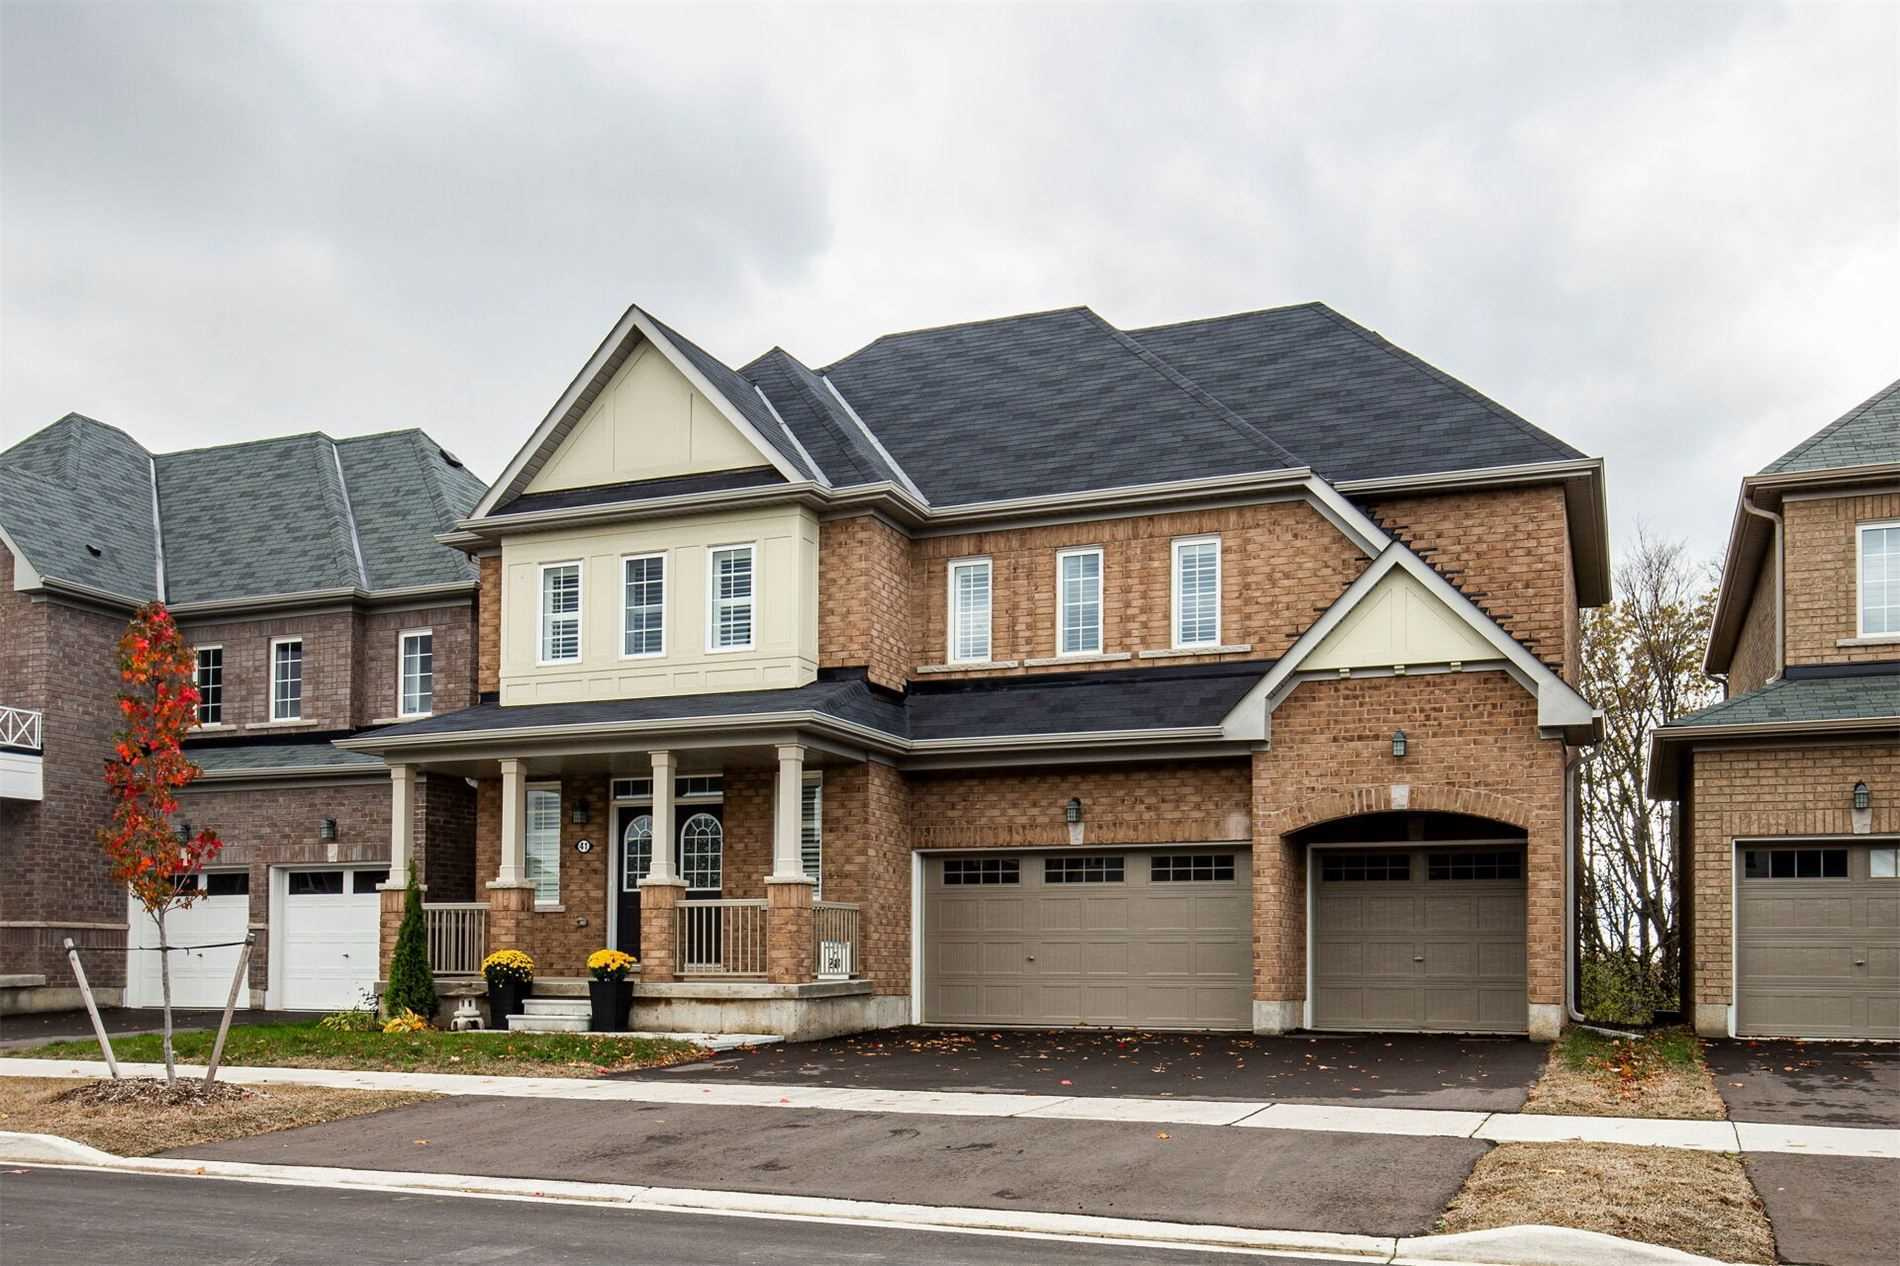 pictures of house for sale MLS: X4963967 located at 41 Fleming Cres, Haldimand N3W0C3